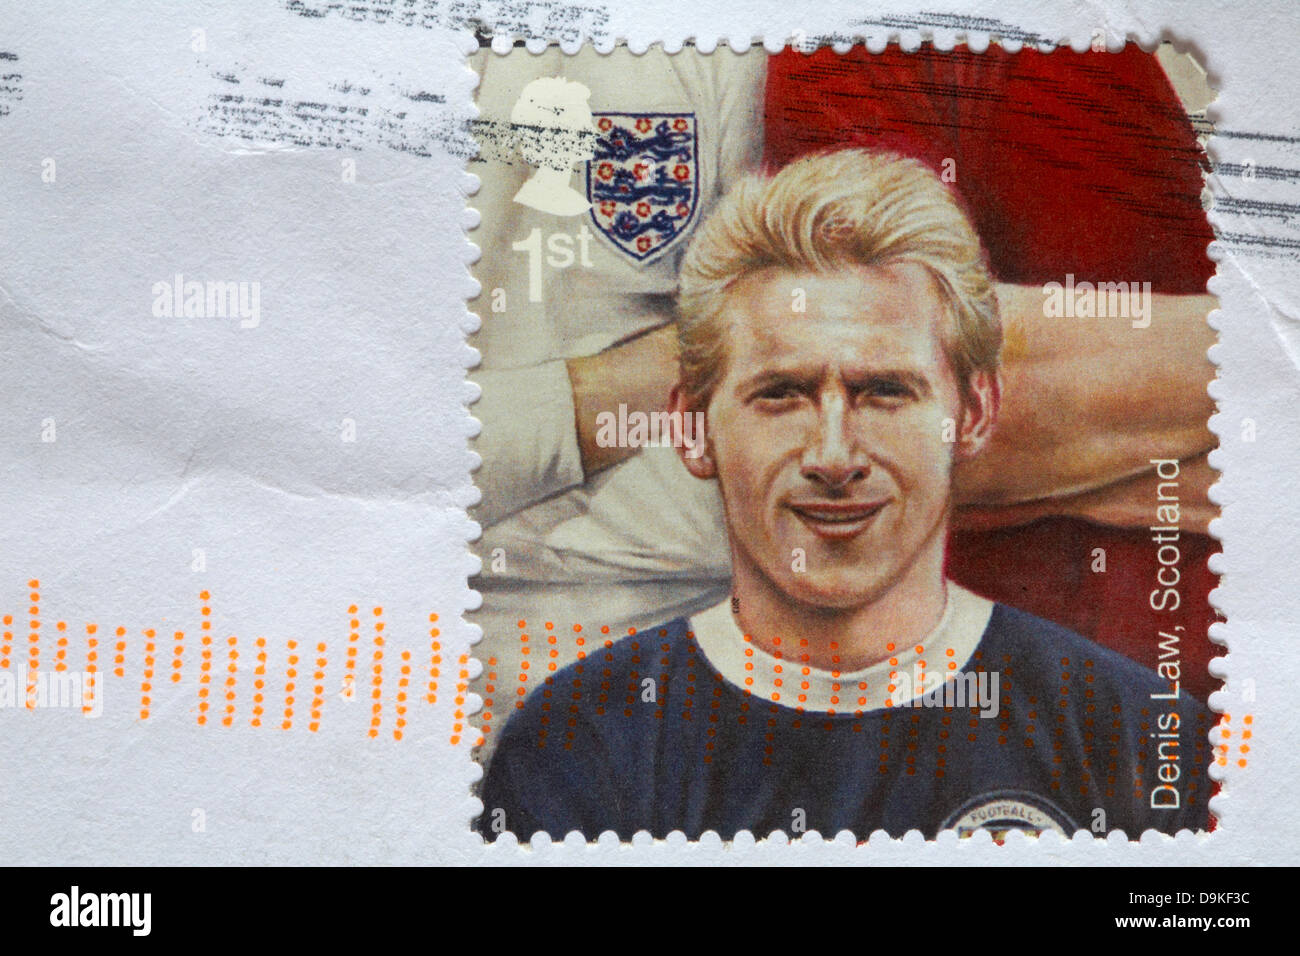 1st class stamp showing Stamp Denis Law, Scotland stuck on white envelope - Stock Image